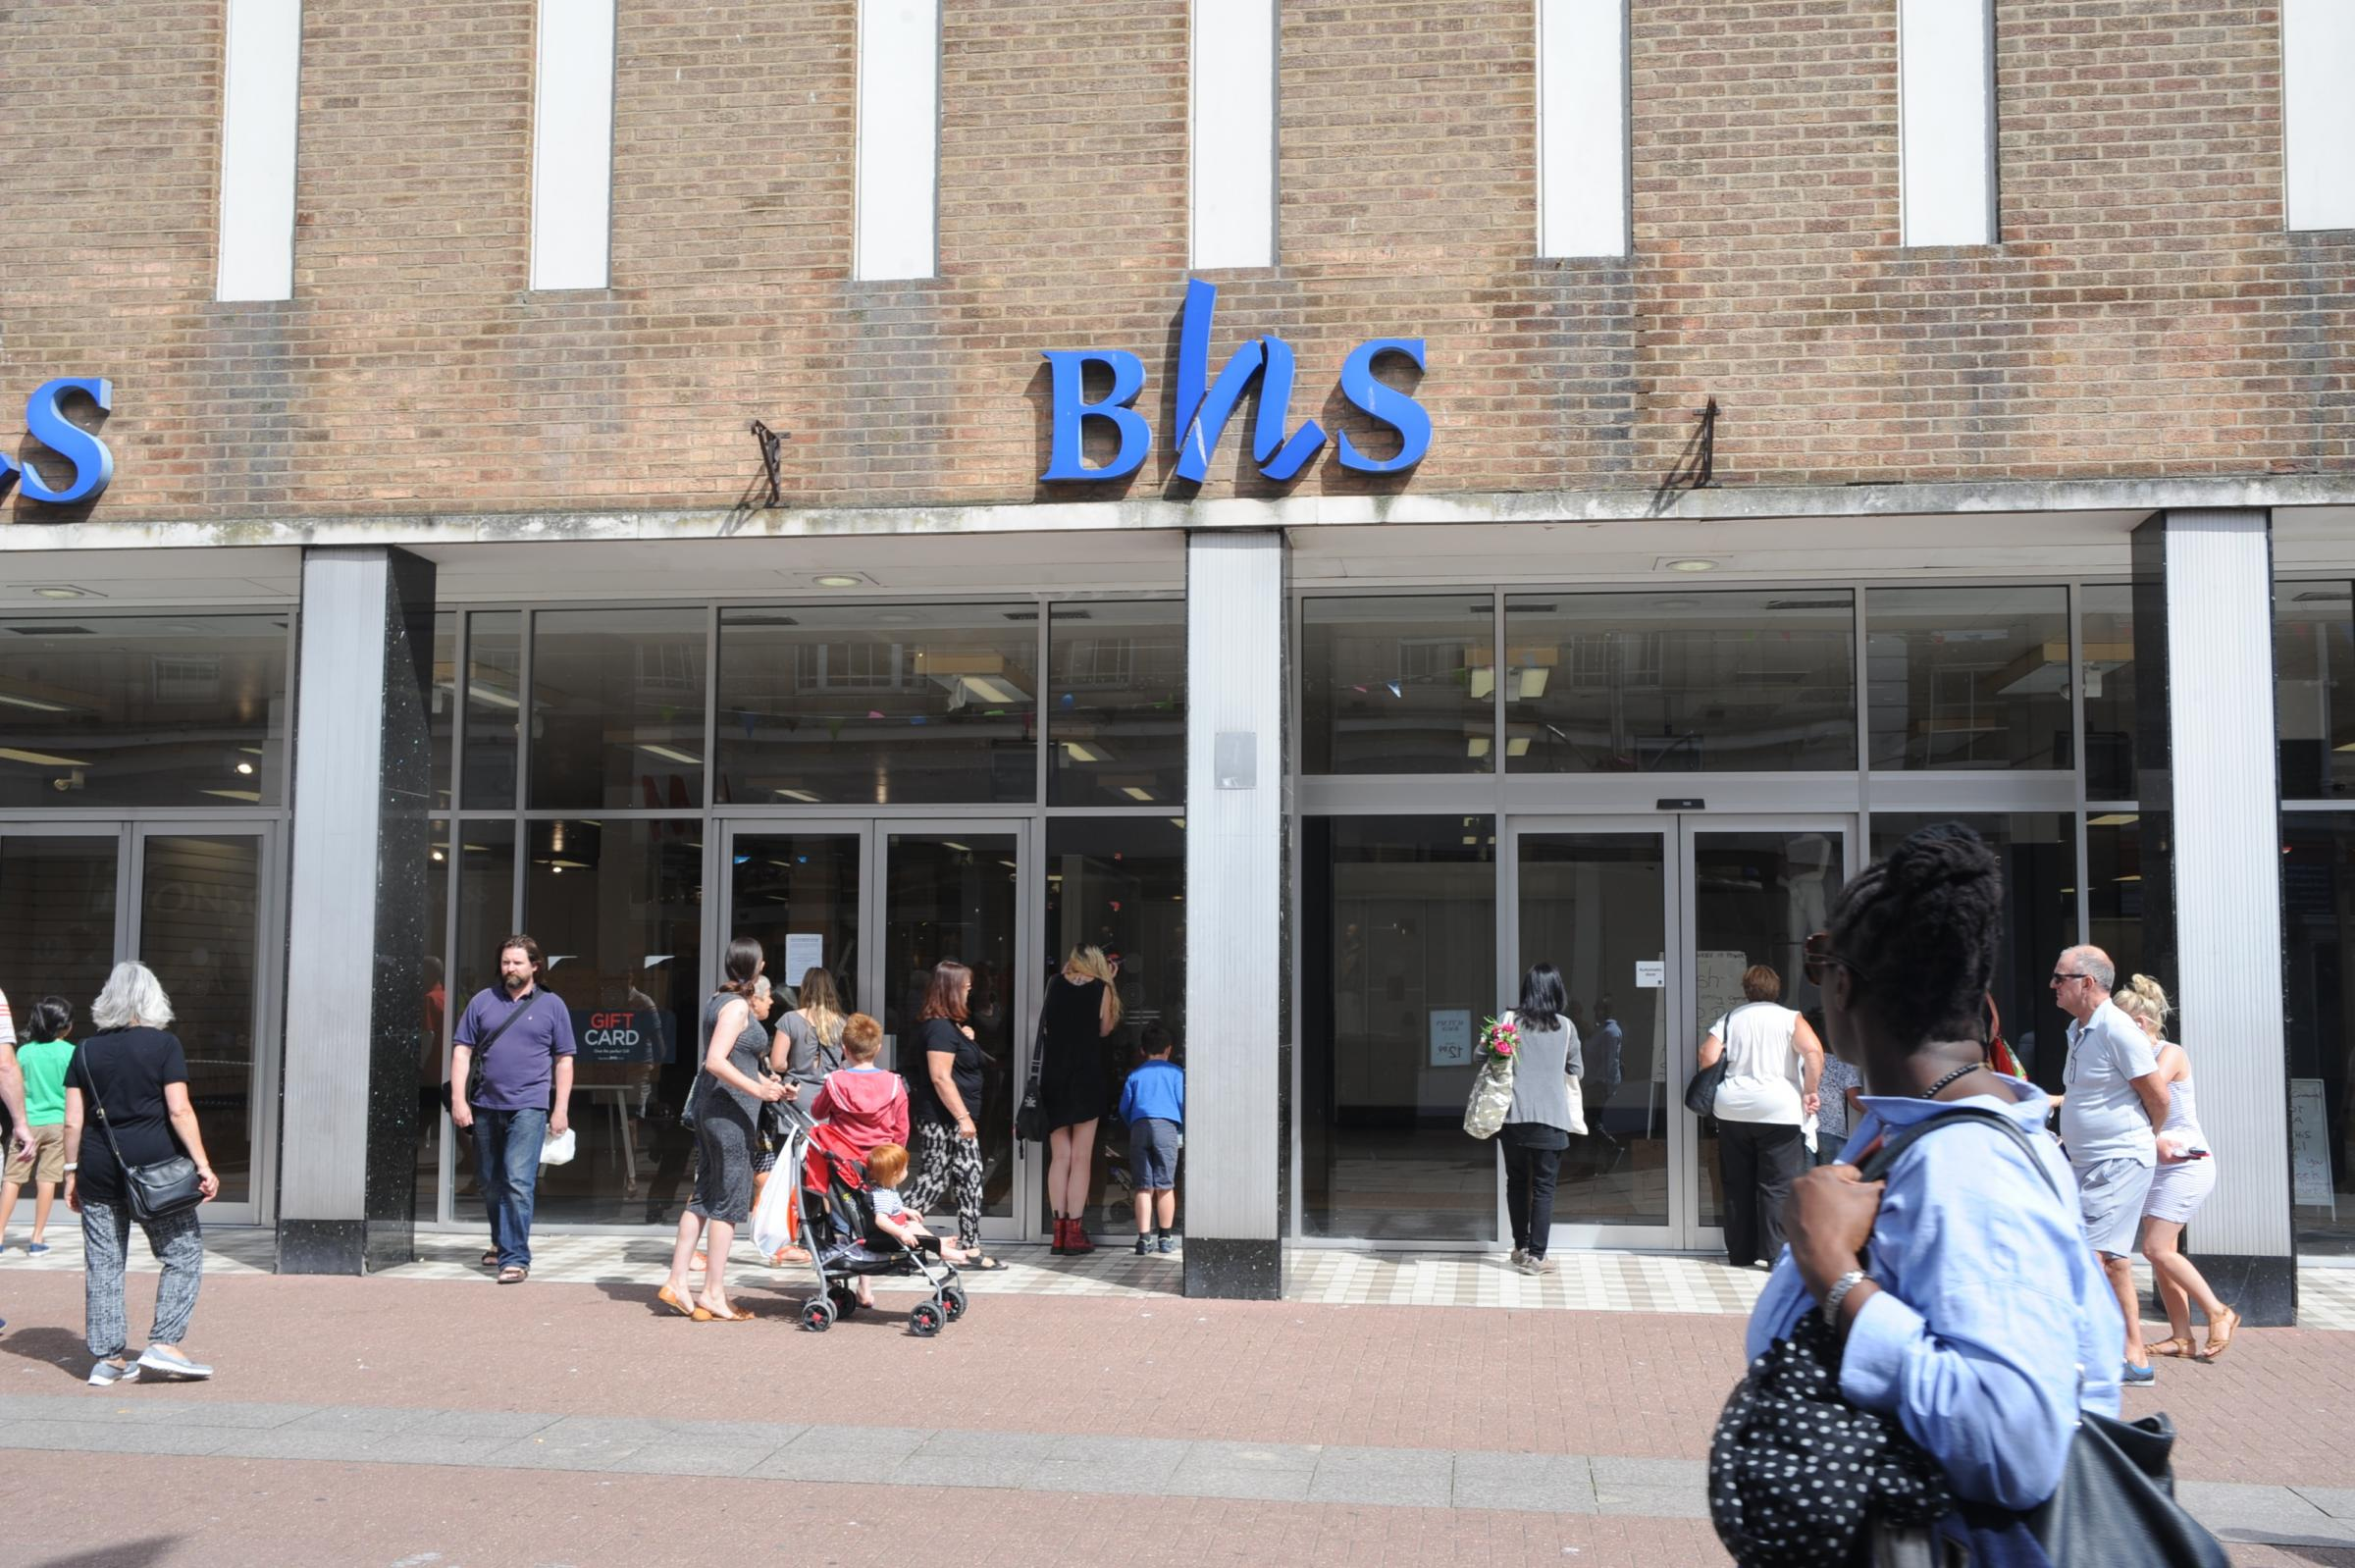 Bemused shoppers peer at signs put up by squatters who have moved into the newly empty BHS store.